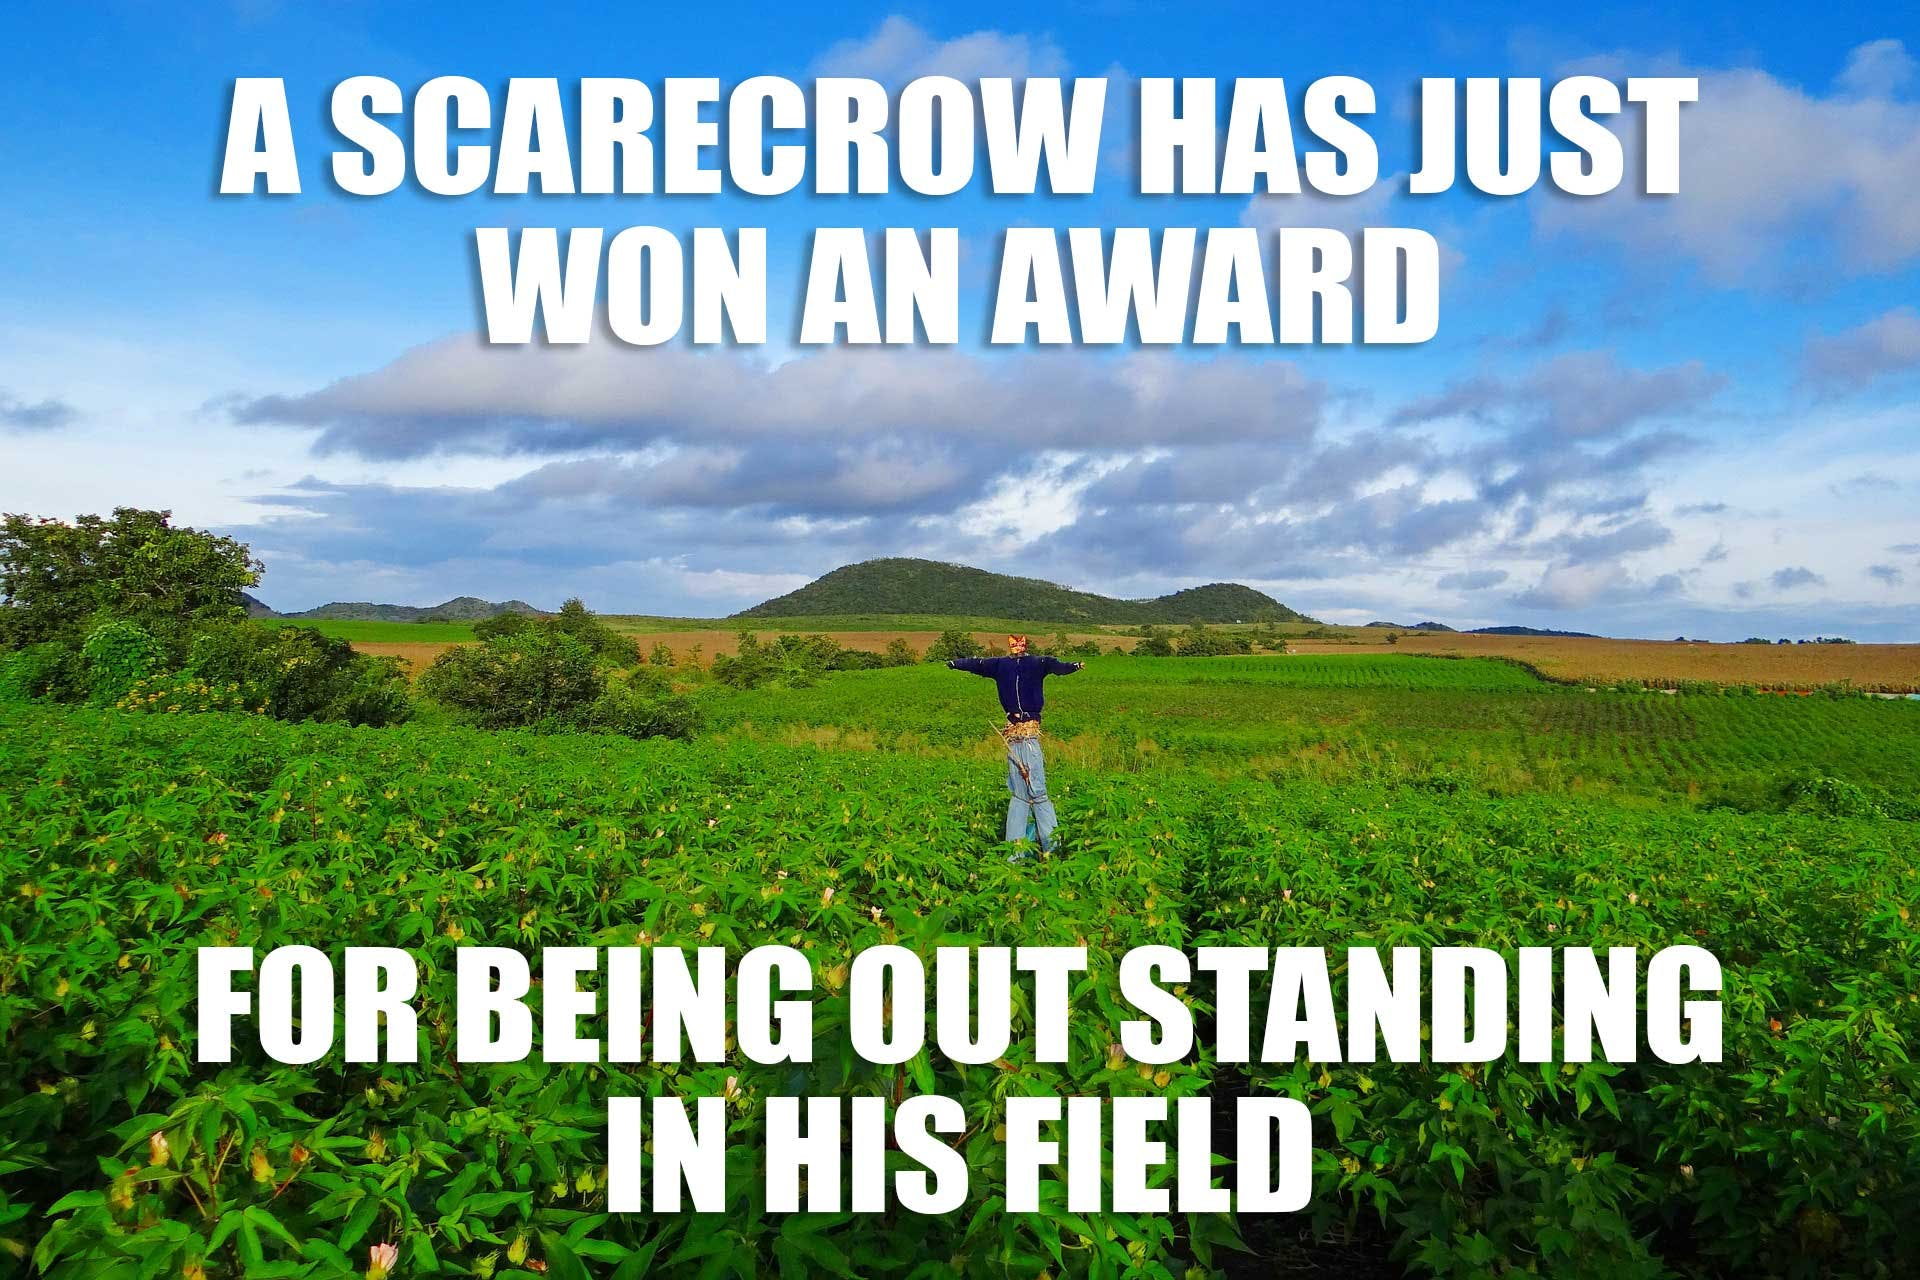 A scarecrow has won an award